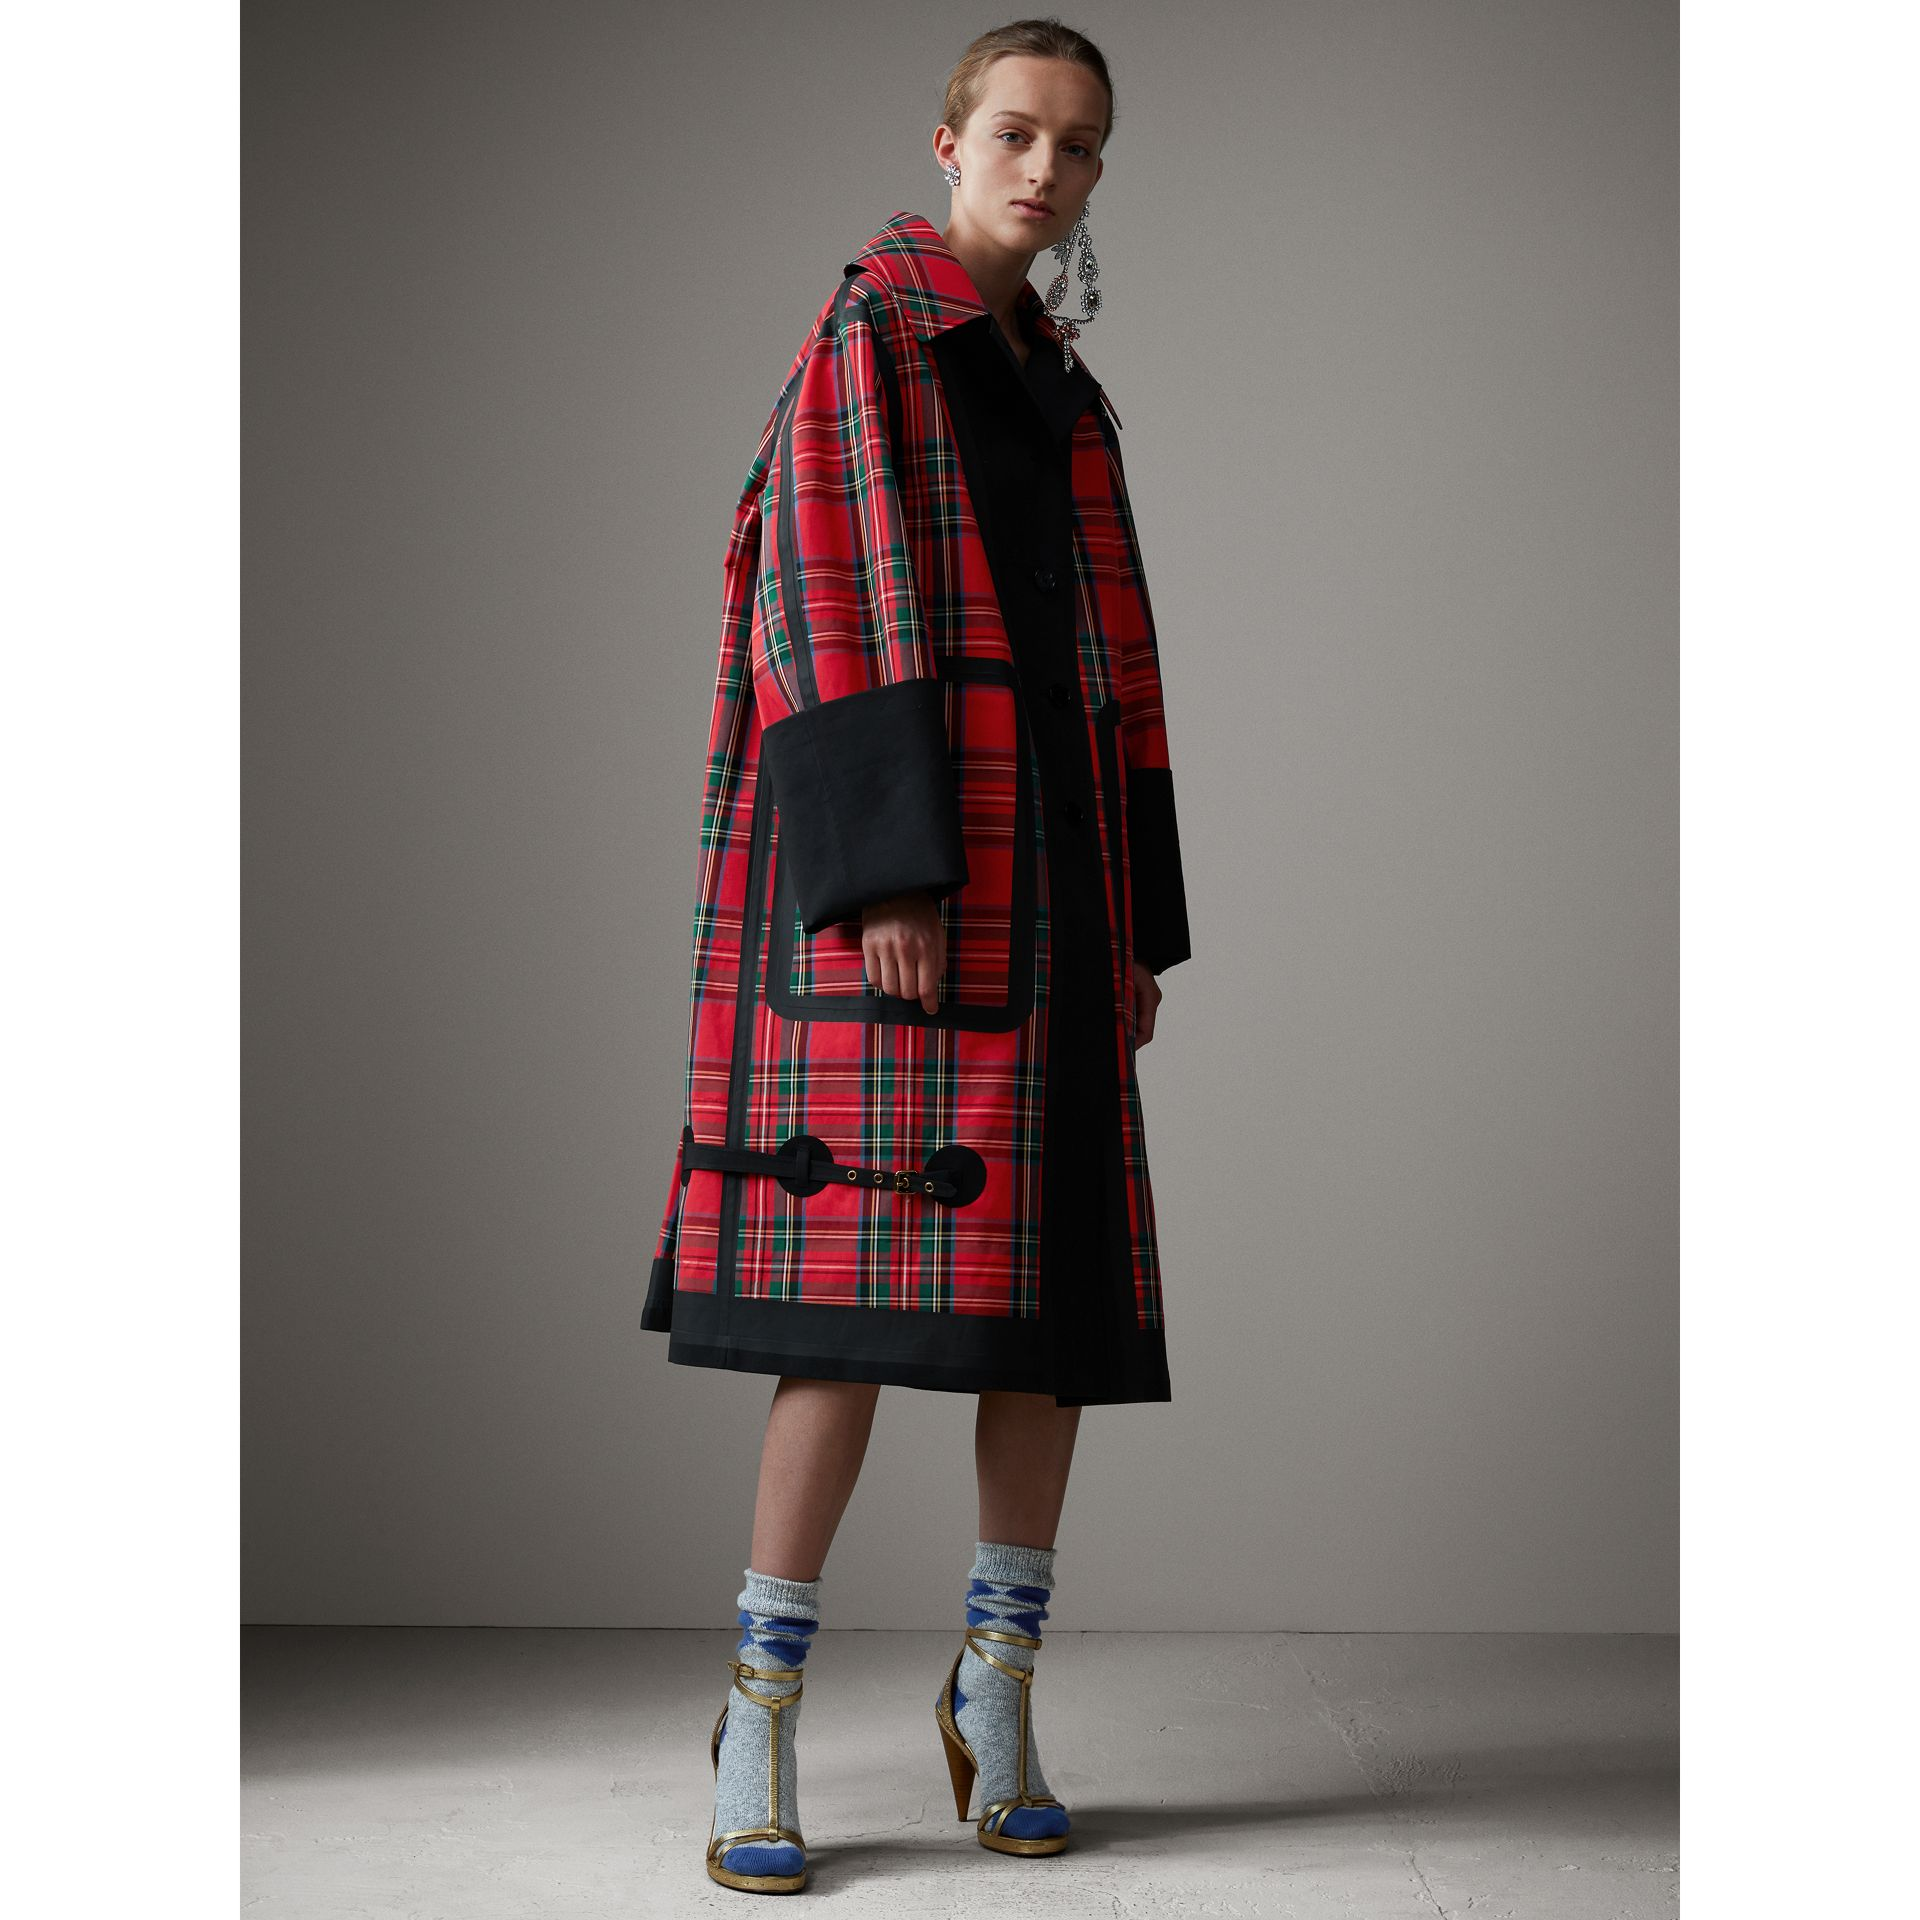 Tartan Bonded Cotton Seam-sealed Oversized Car Coat in Black - Women | Burberry United States - gallery image 4